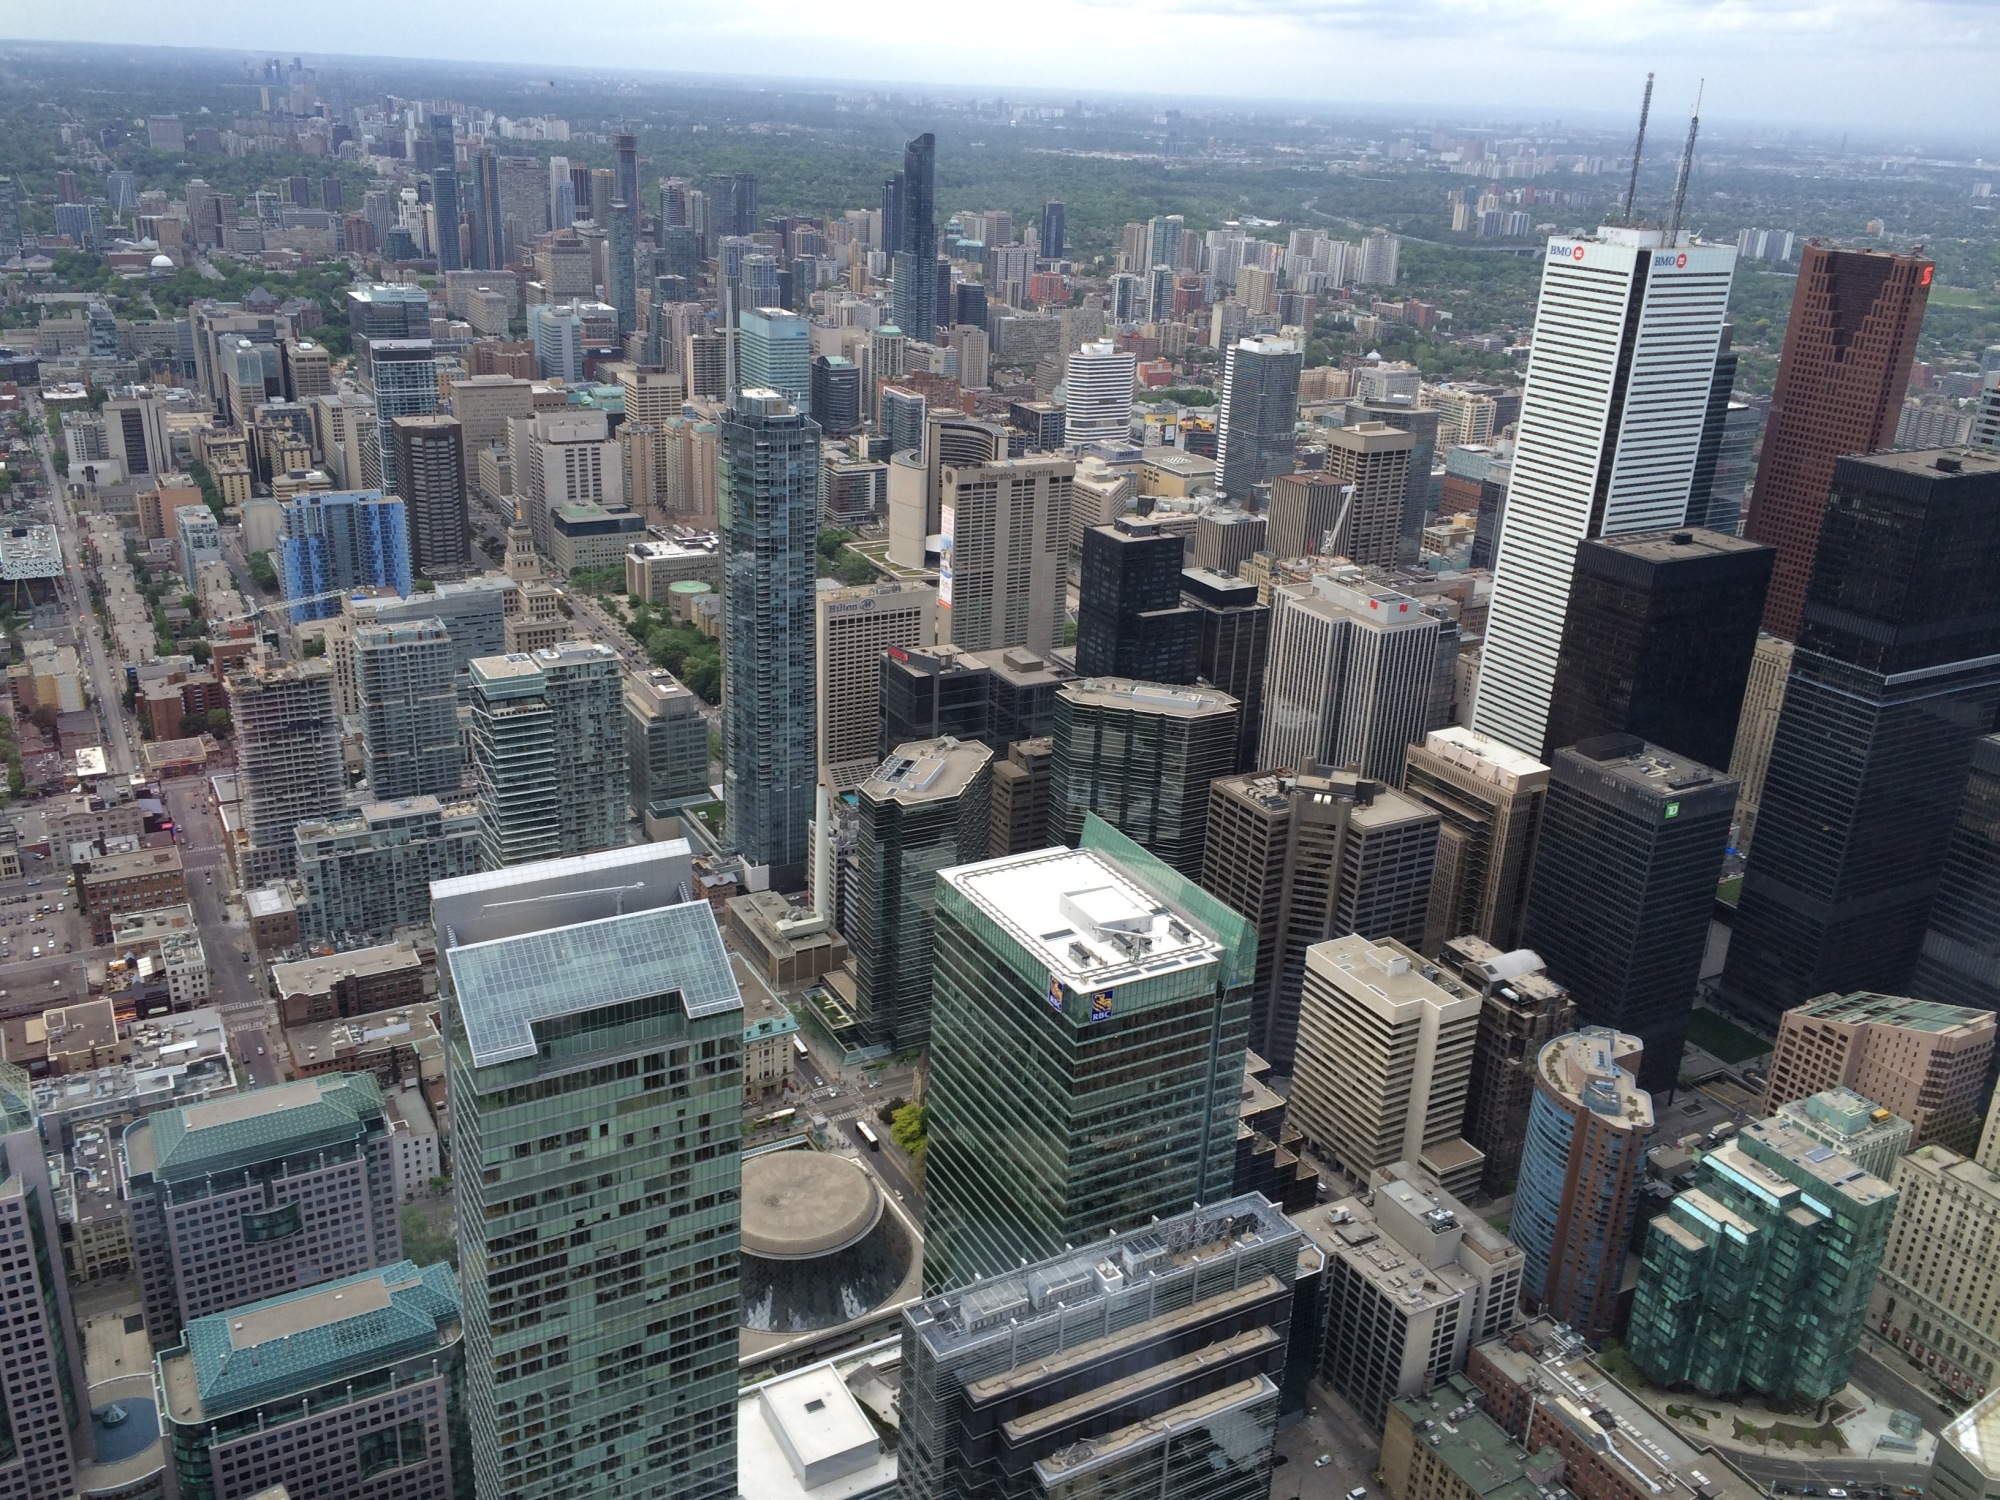 City of Toronto Skyview